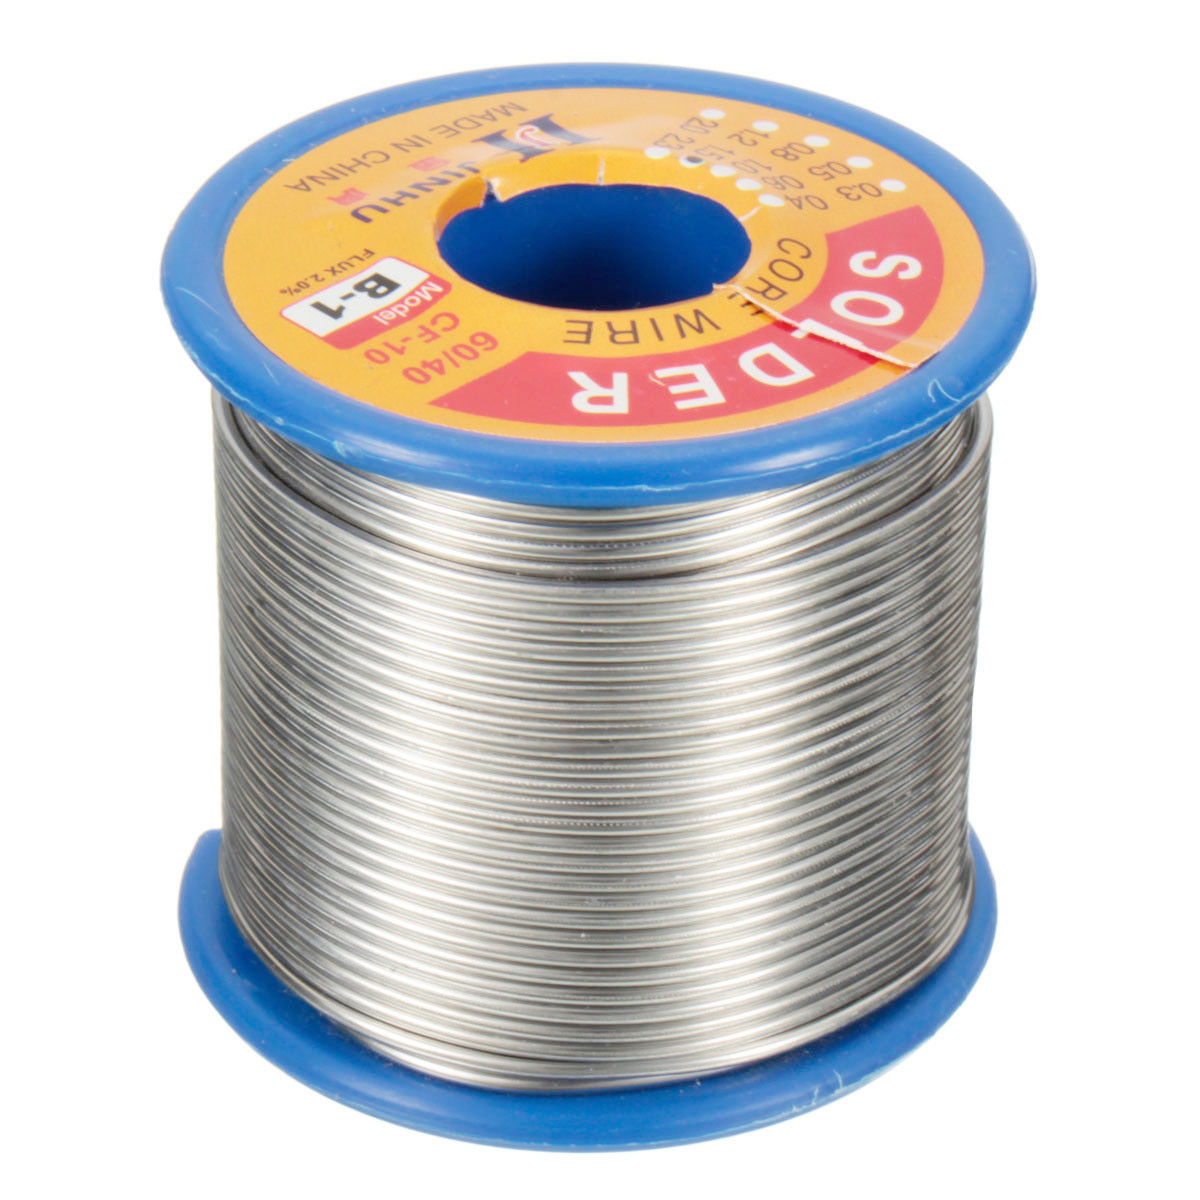 500g 1.5mm Flux 2.0% Solder Wire Lead 60/40 HQ Flux Mul